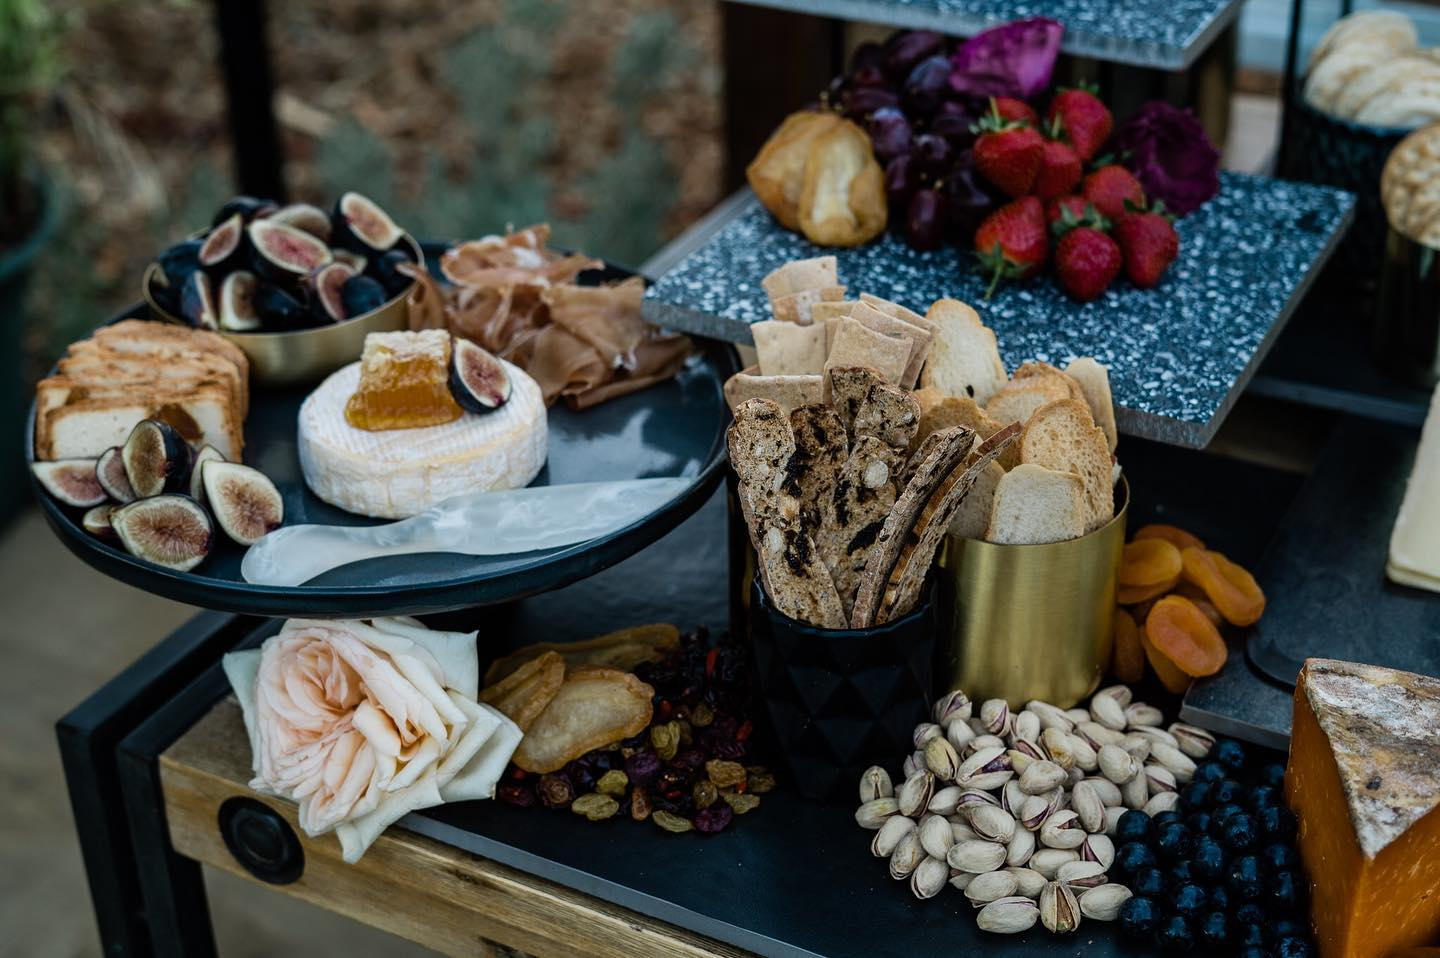 peggy saas photography perth wedding grazing tables platters boards food catering